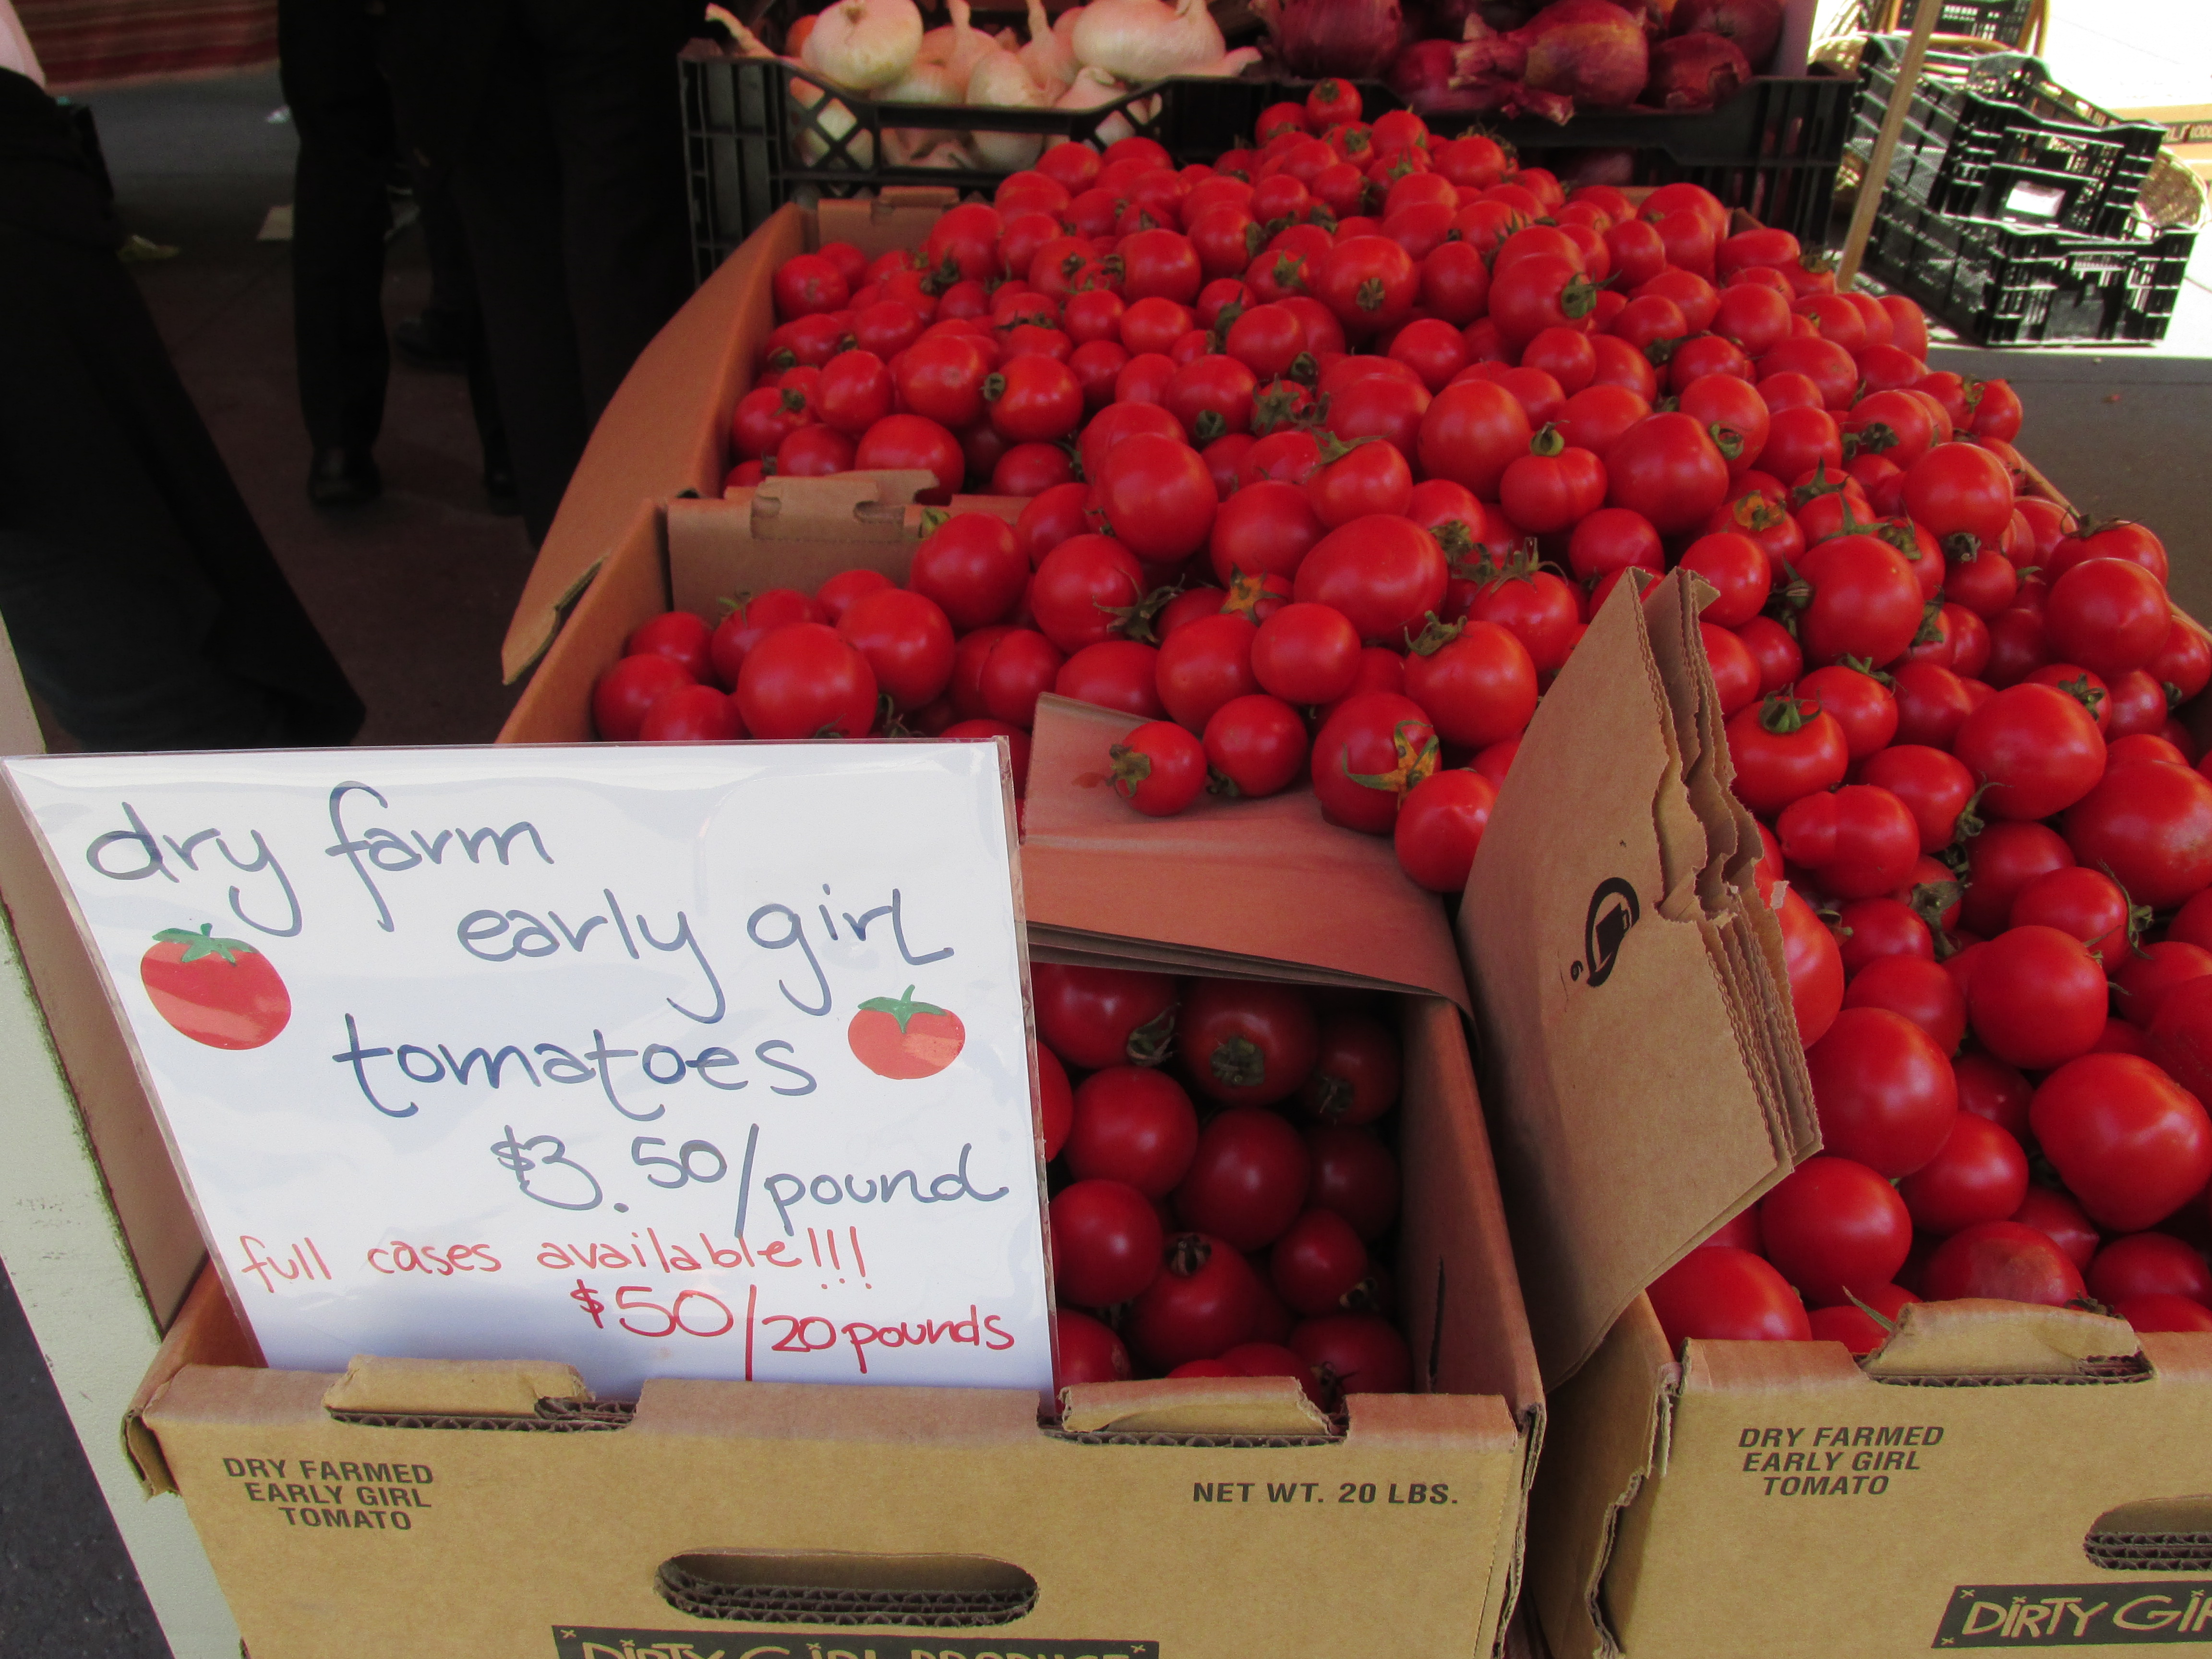 Customers at the farmer's market in San Francisco's ferry building were snapping up these tomatoes from Dirty Girl Produce, grown without irrigation.